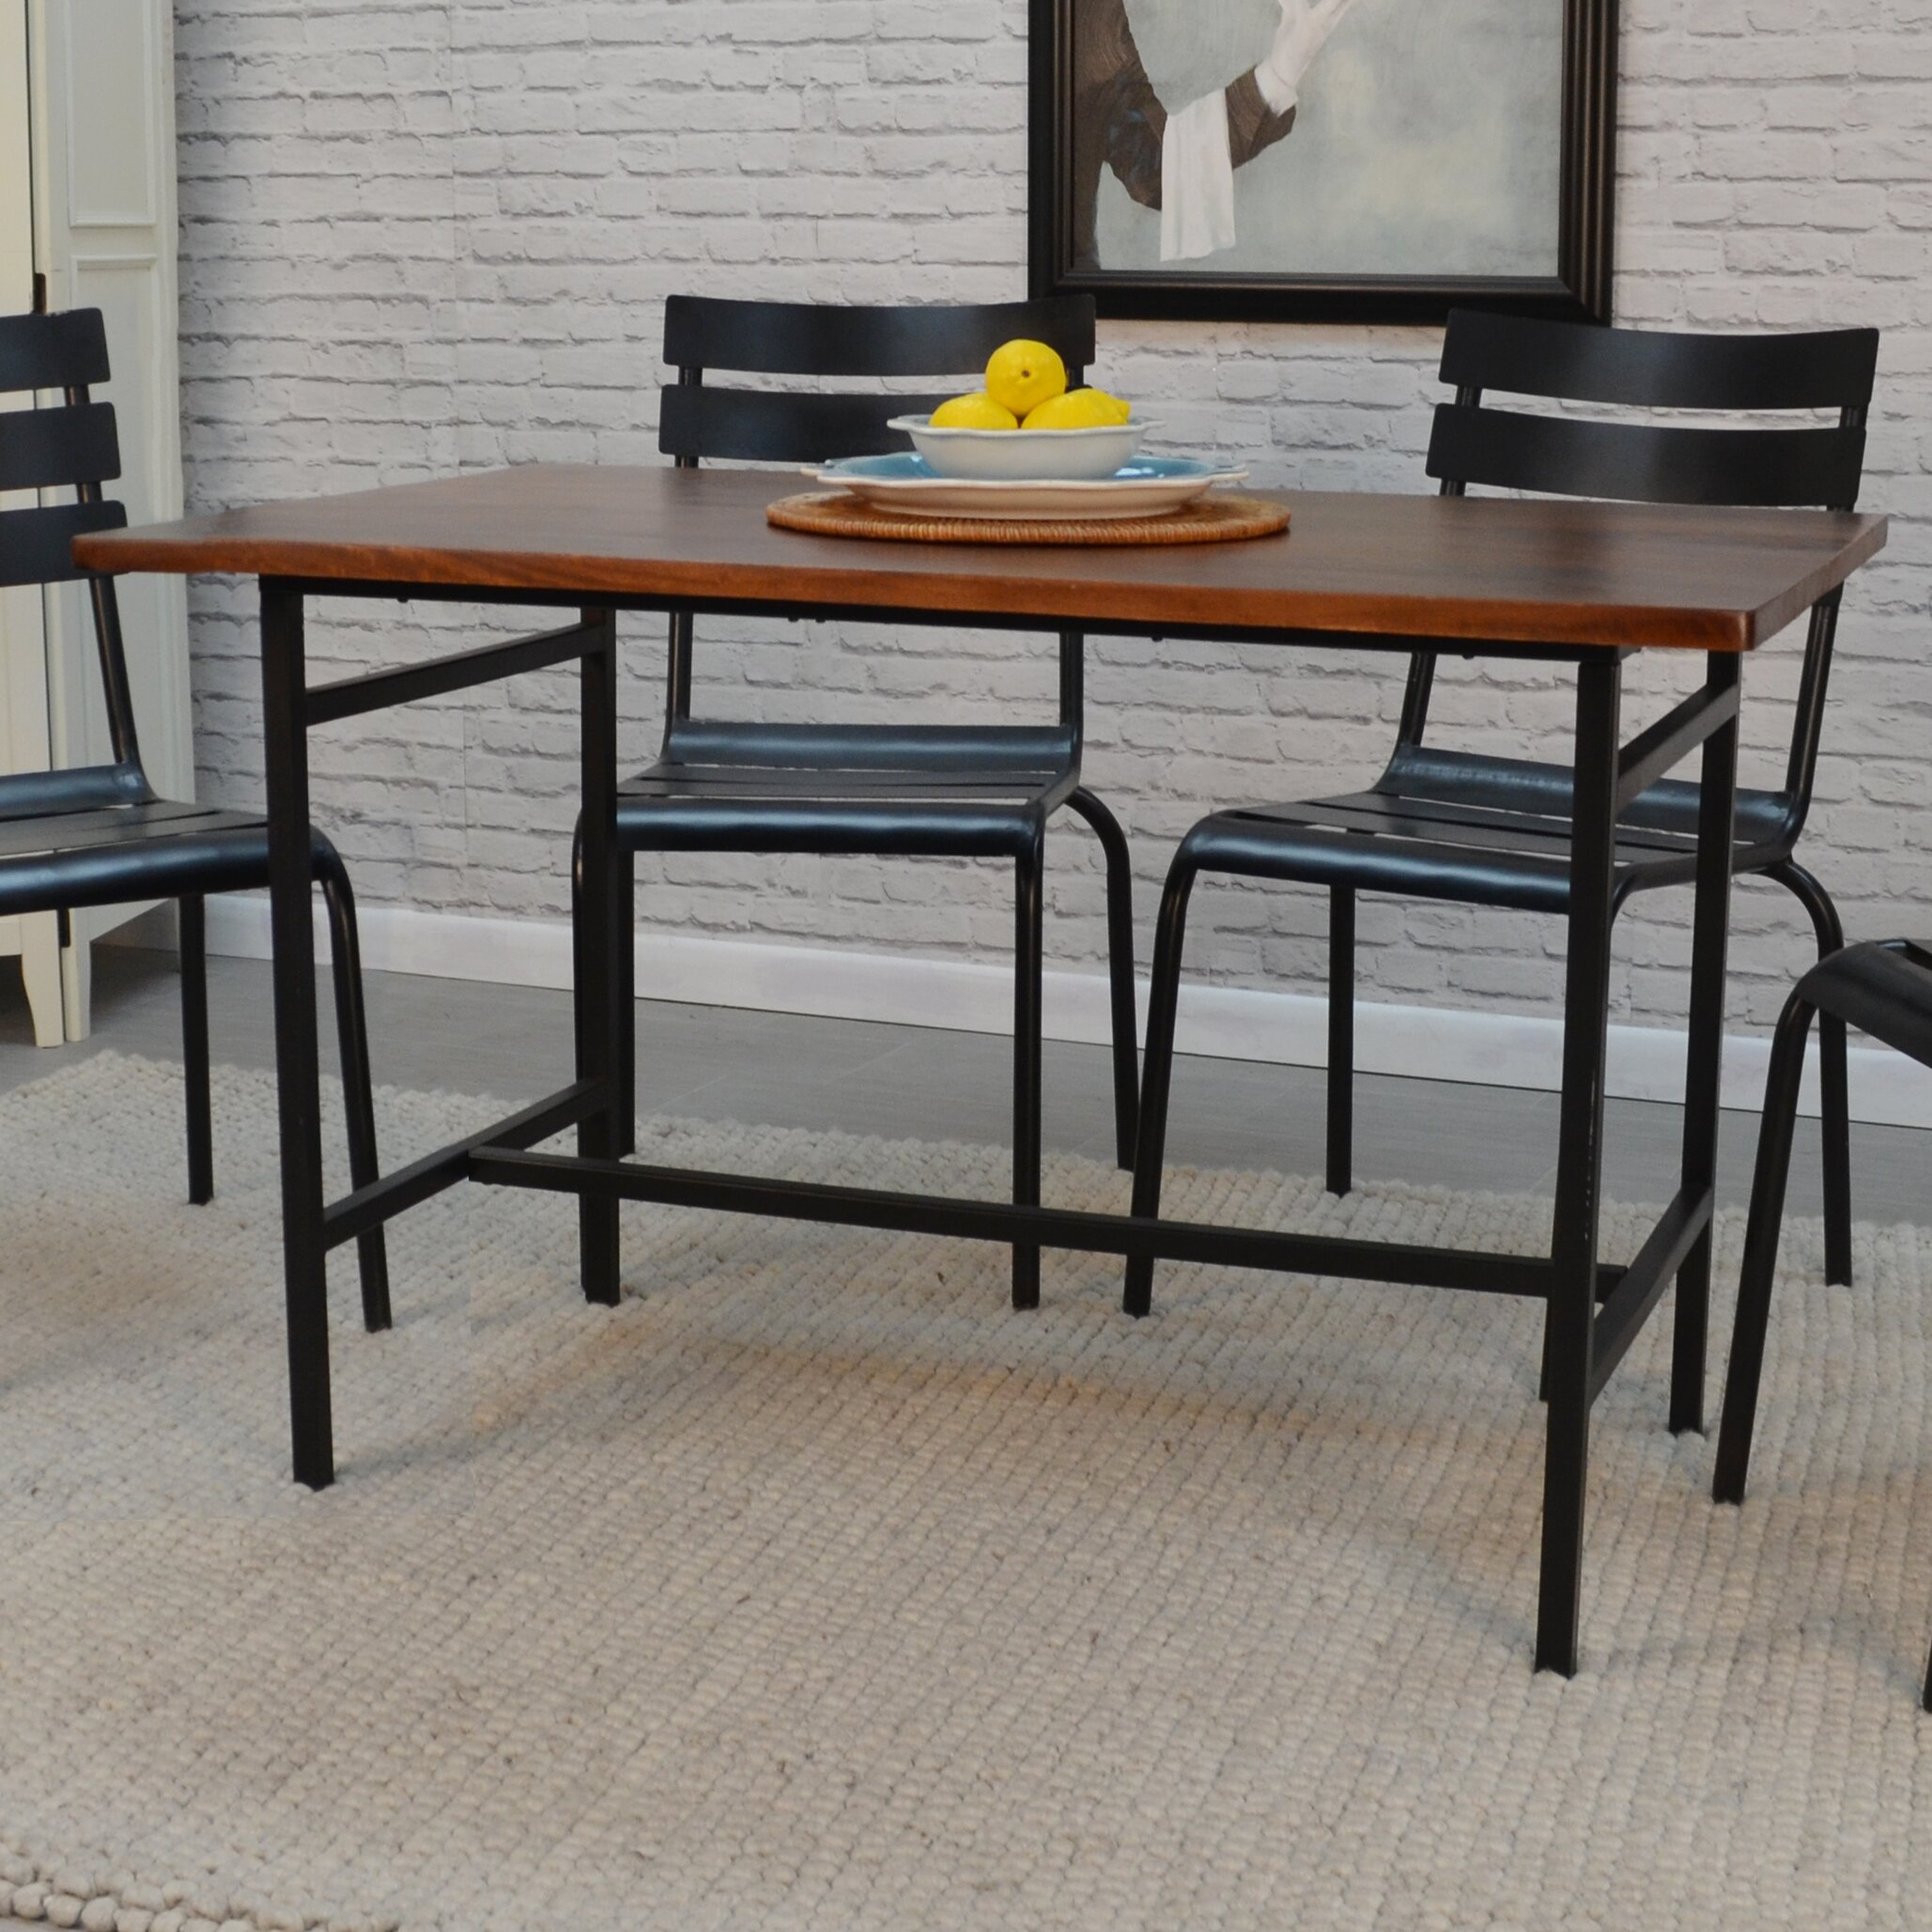 Laurel Foundry Modern Farmhouse Cortaro Dining Table